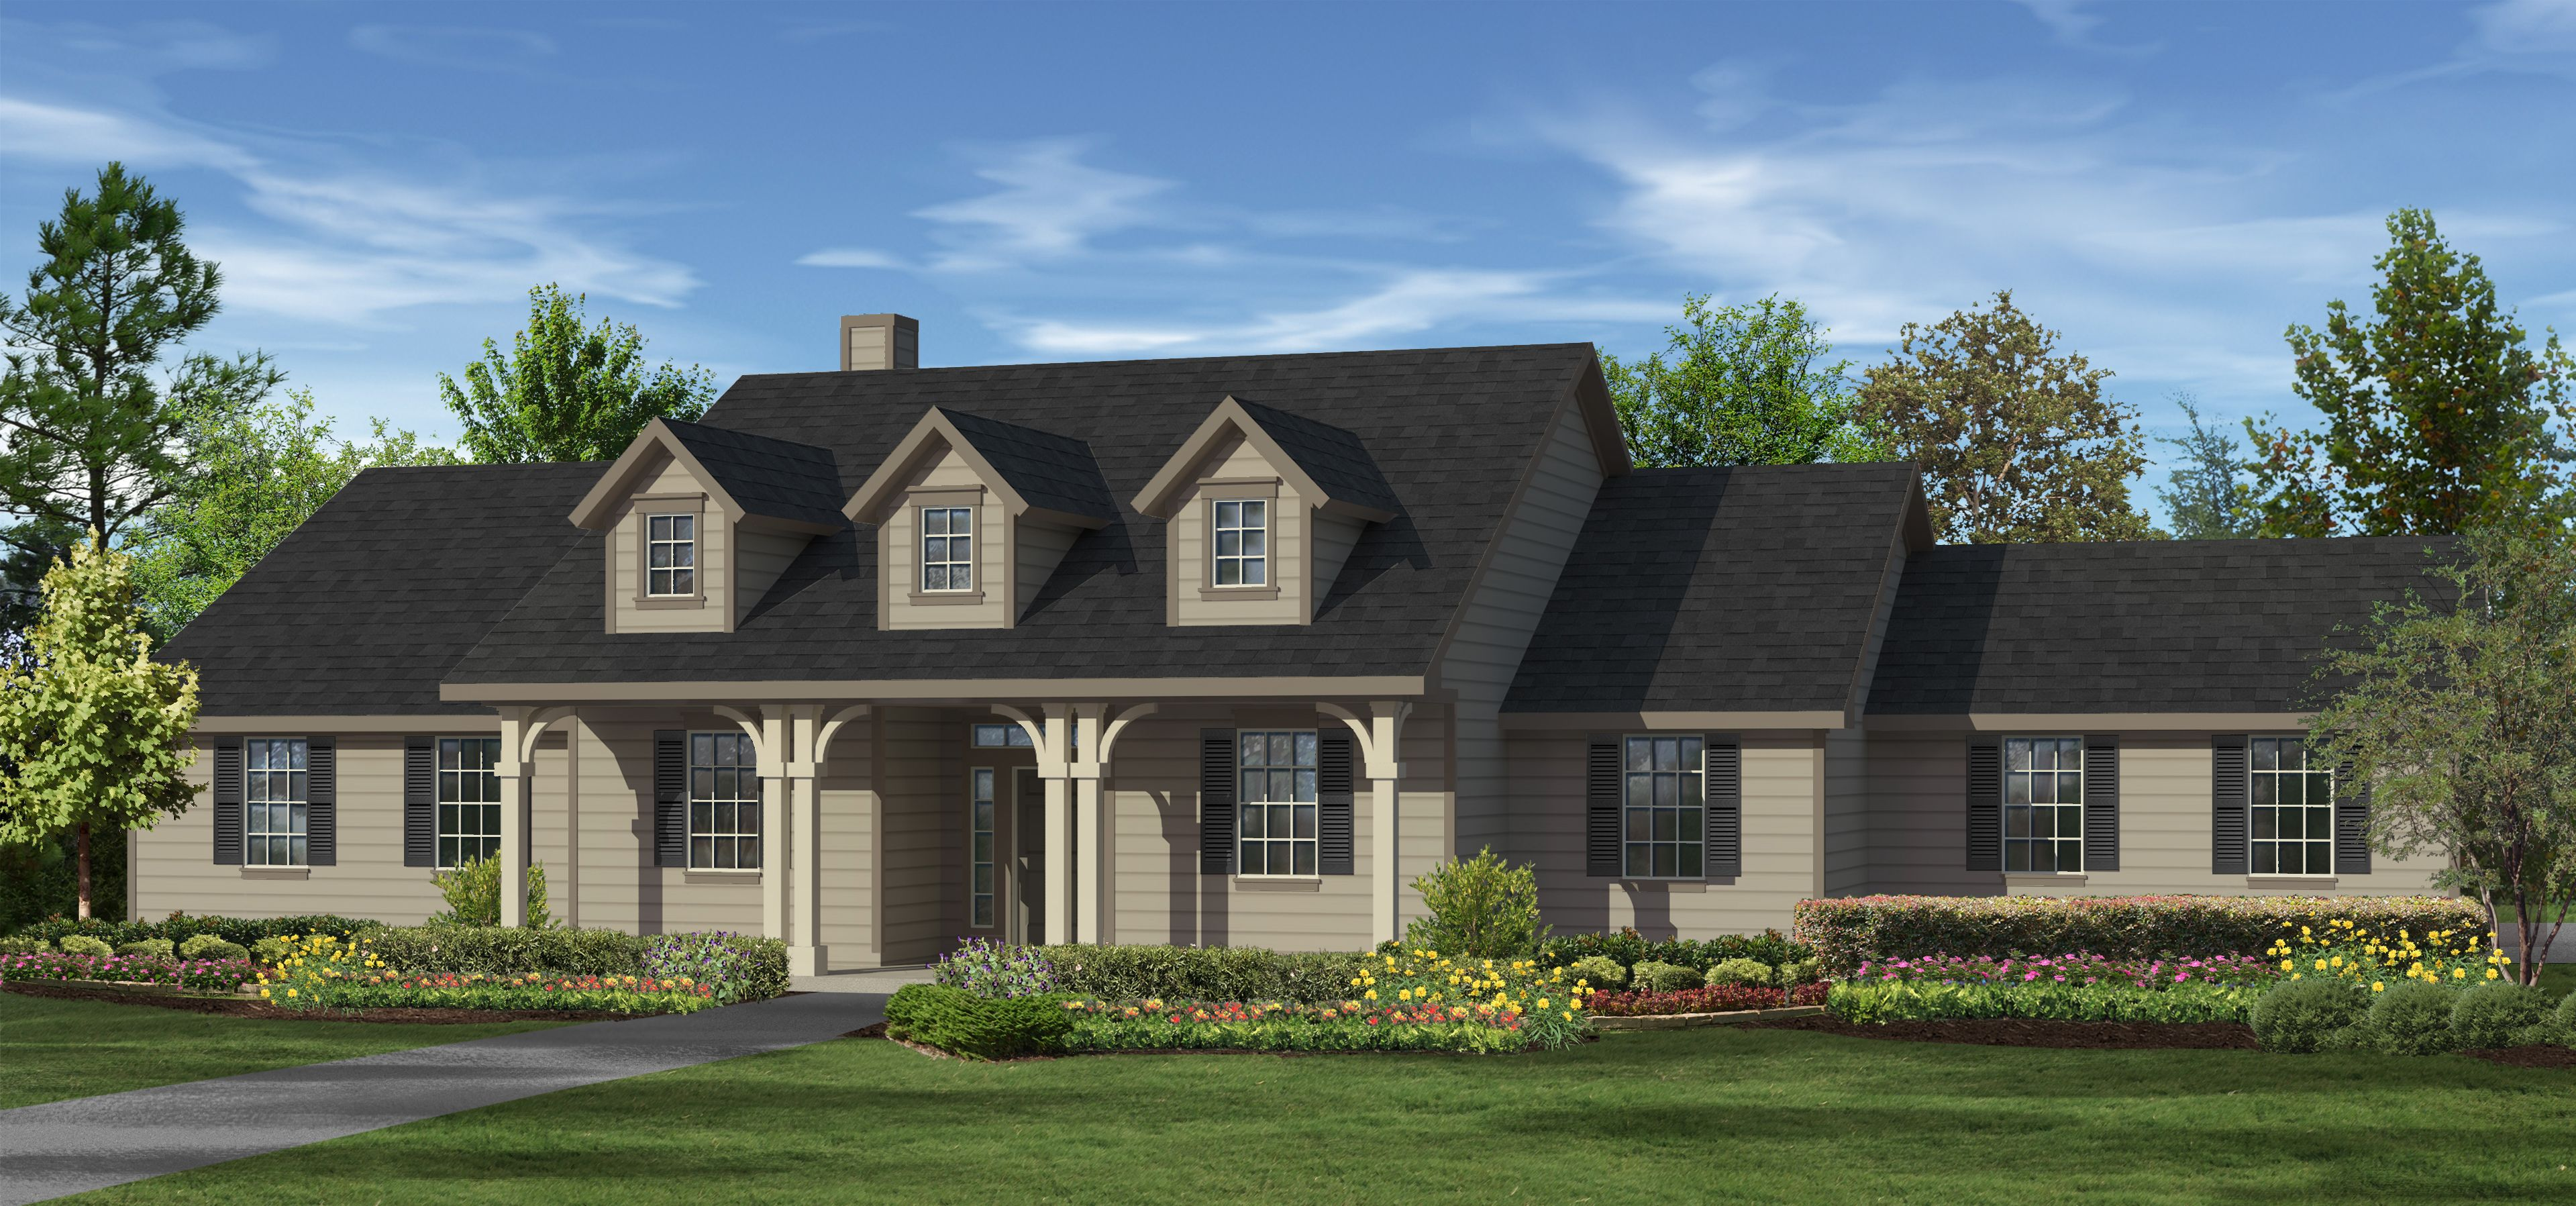 Photo : Carrington Homes Floor Plans Images. Inspiring